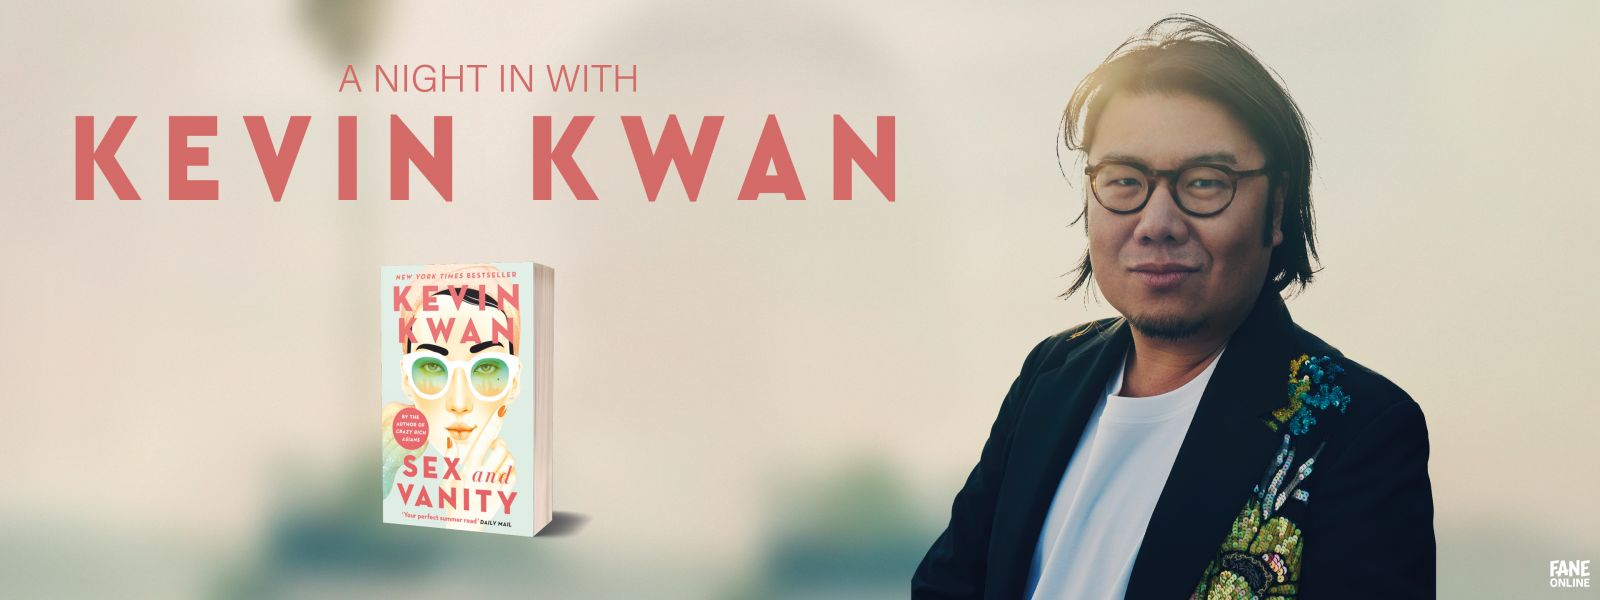 A Night In with Kevin Kwan